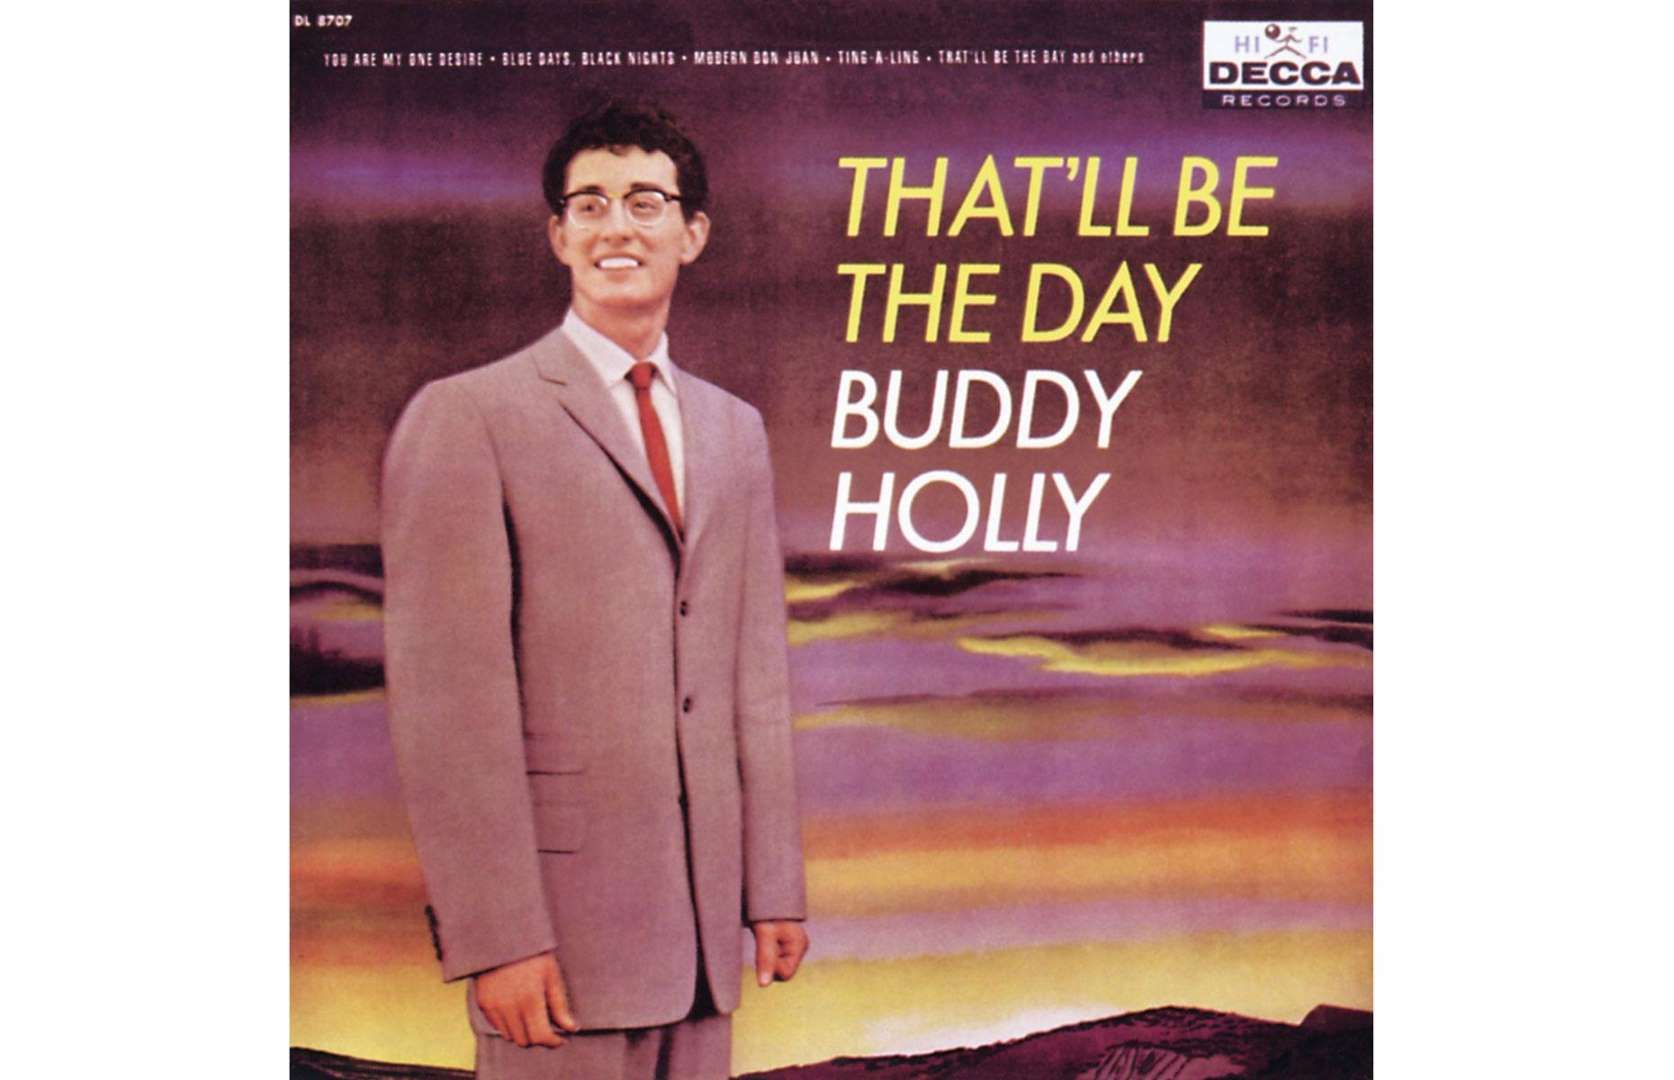 The Original 1958 Pressing Of Buddy Holly S That Ll Be The Day Album Released By Decca Records A Ye Decca Vinyl Records Valuable Vinyl Records Records